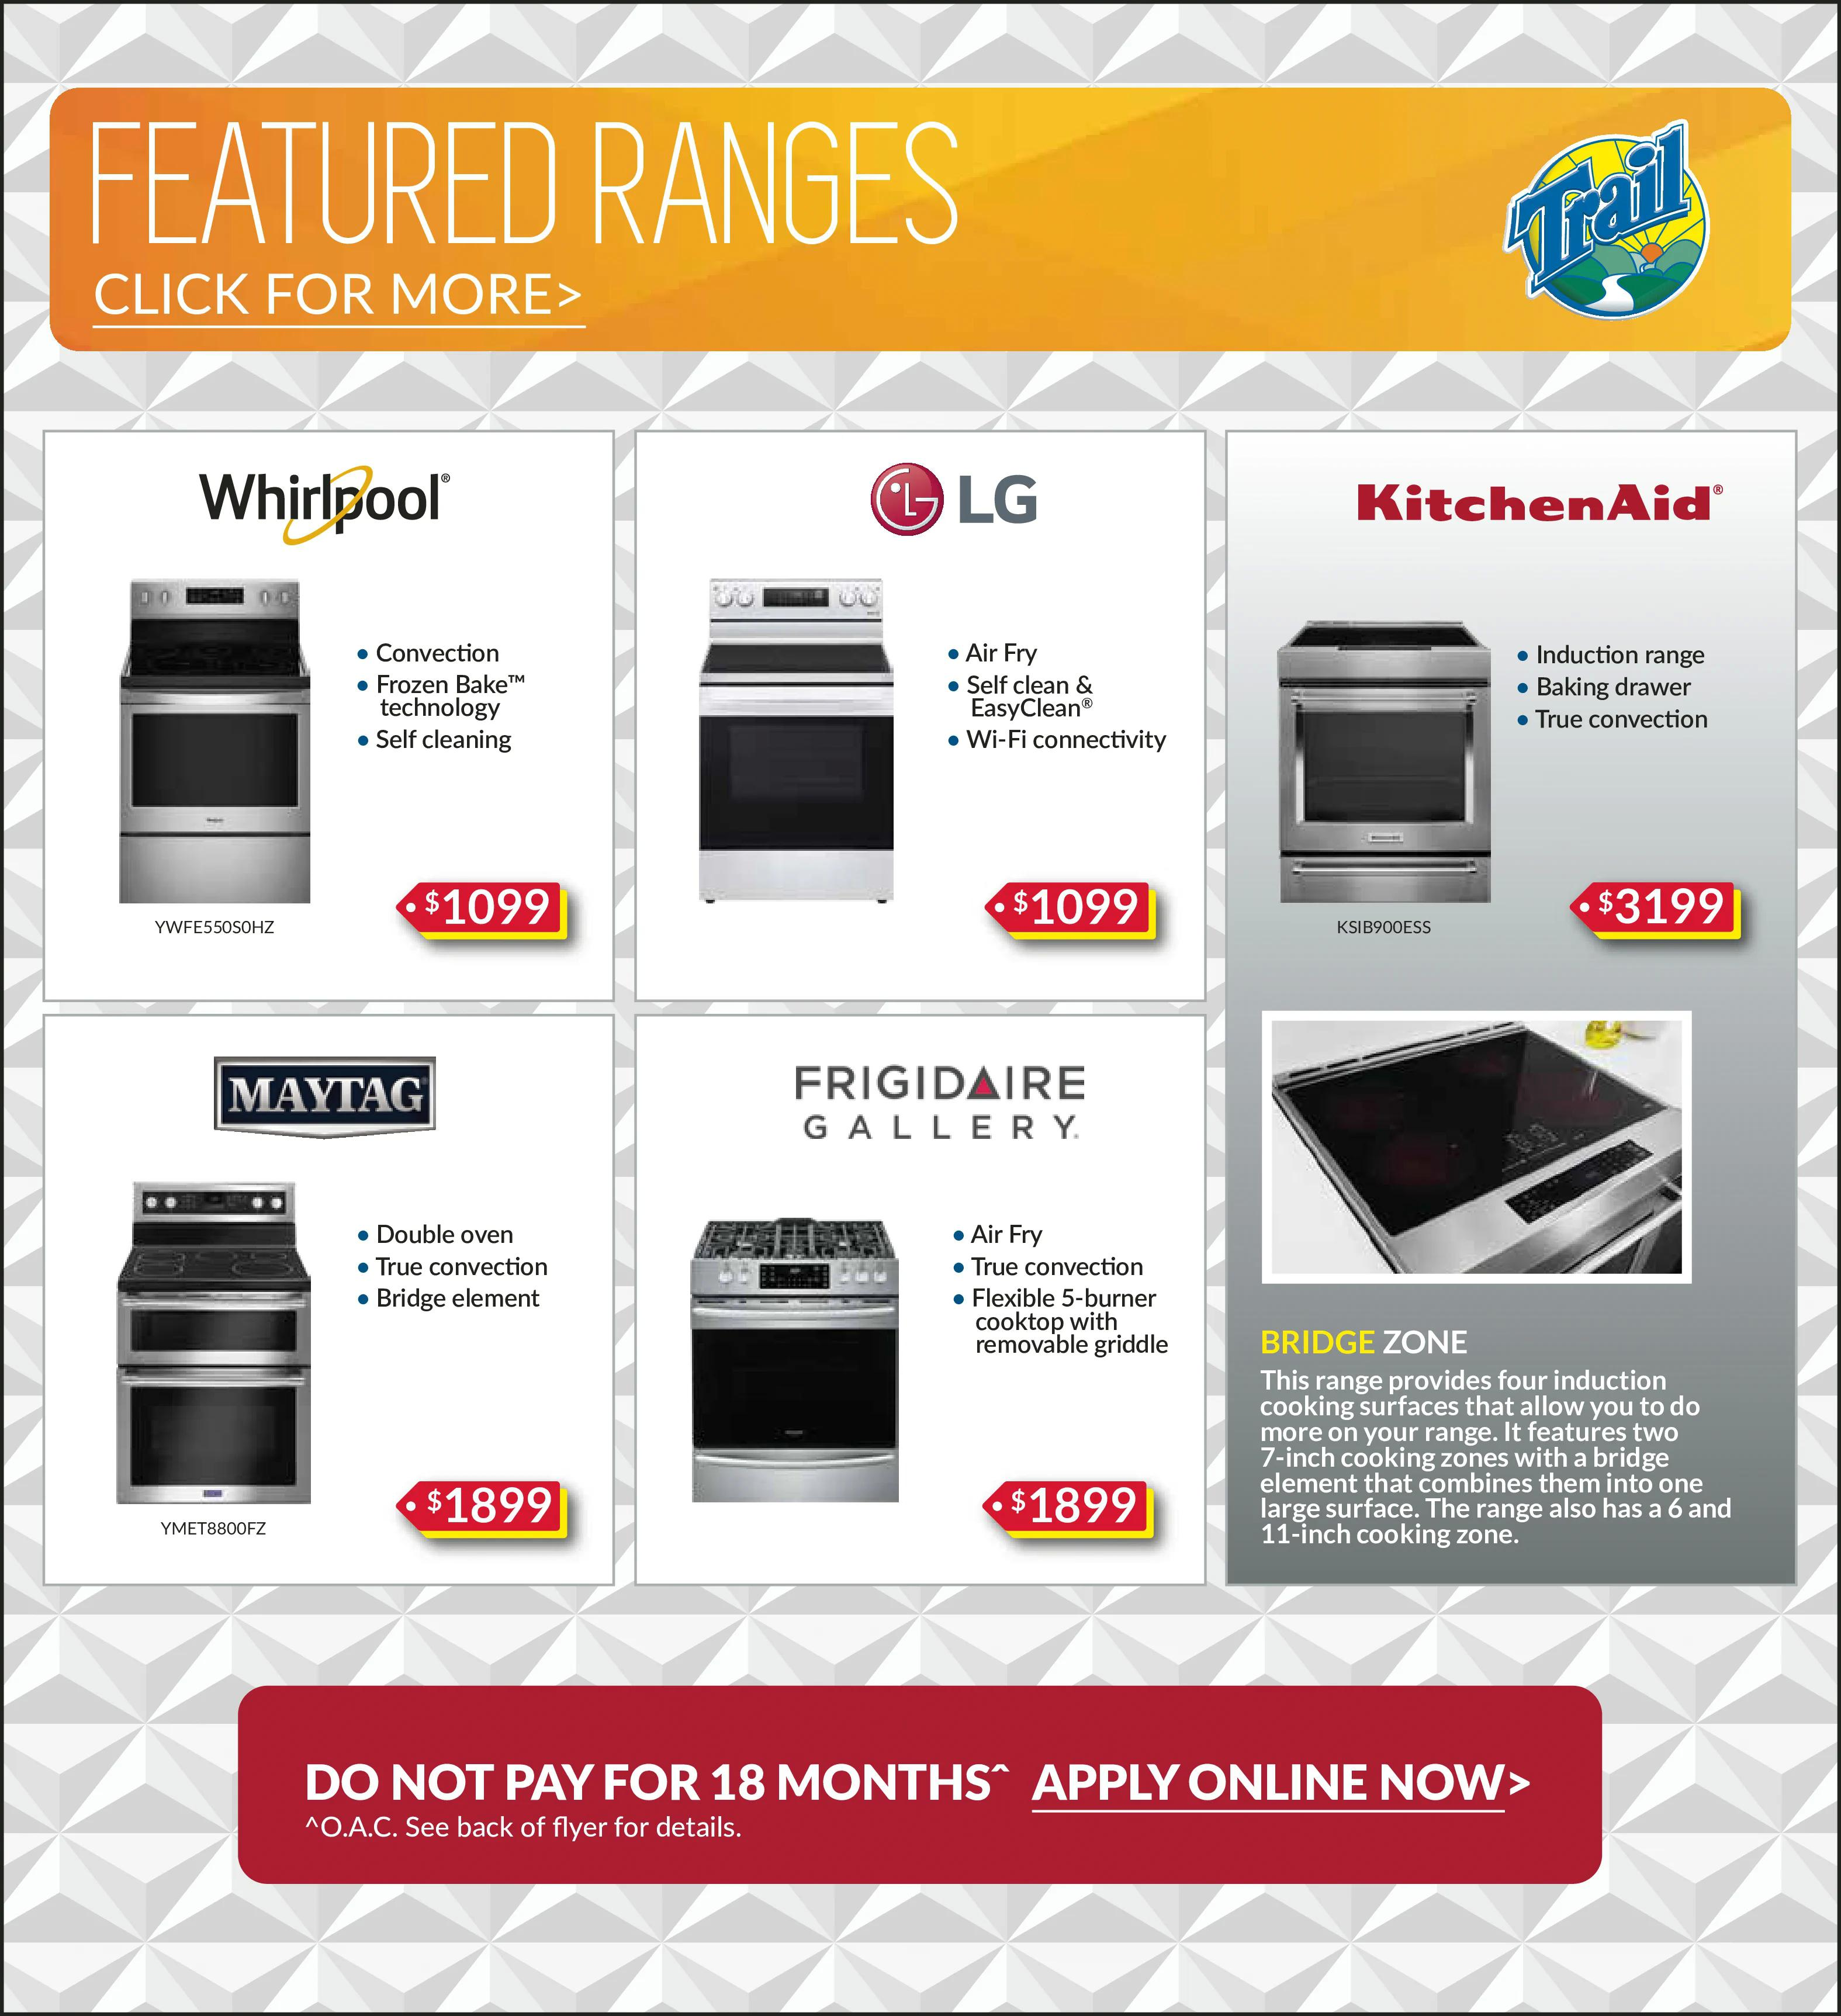 Trail Appliances - Weekly Flyer Specials - Page 4